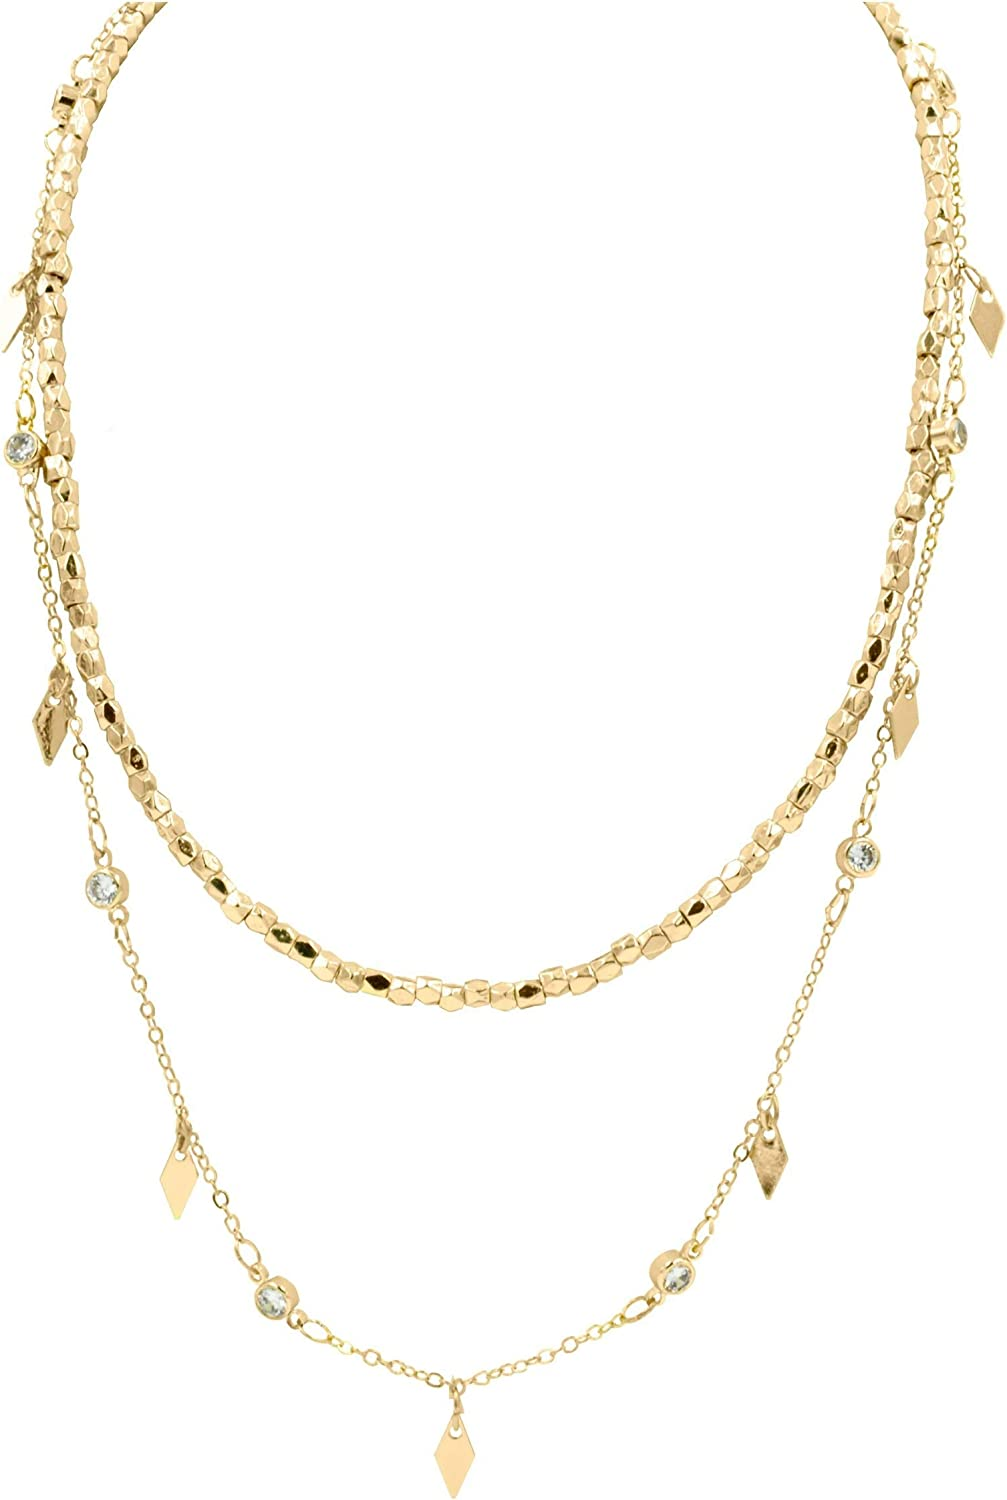 Kinsley Armelle Goddess Collection - Aria Necklace